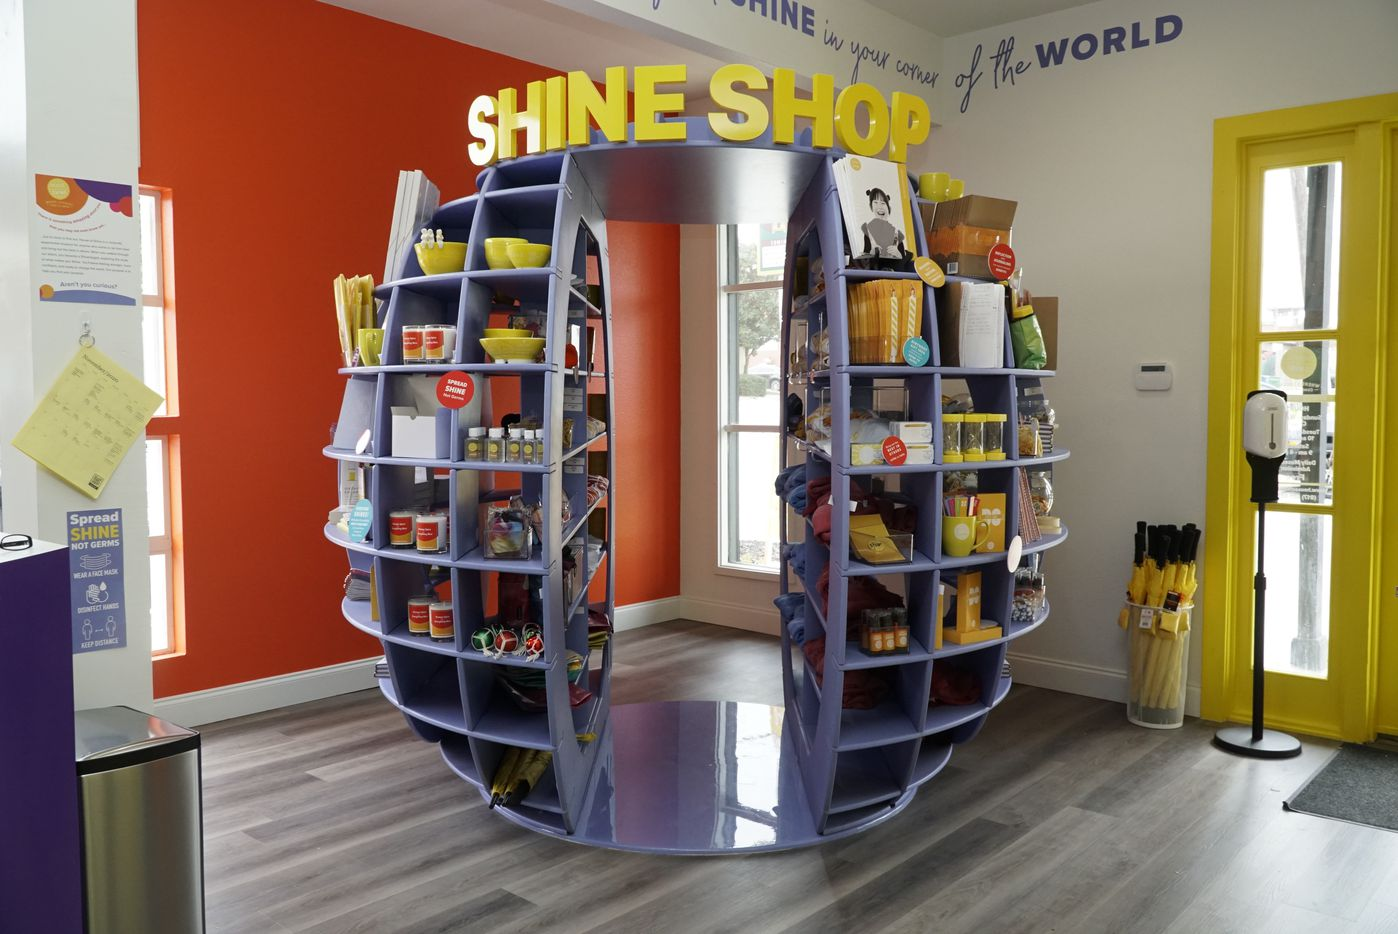 The Shine Shop has paraphernalia at House of Shine in Grapevine, Texas on Friday, November 20, 2020.  (Lawrence Jenkins/Special Contributor)